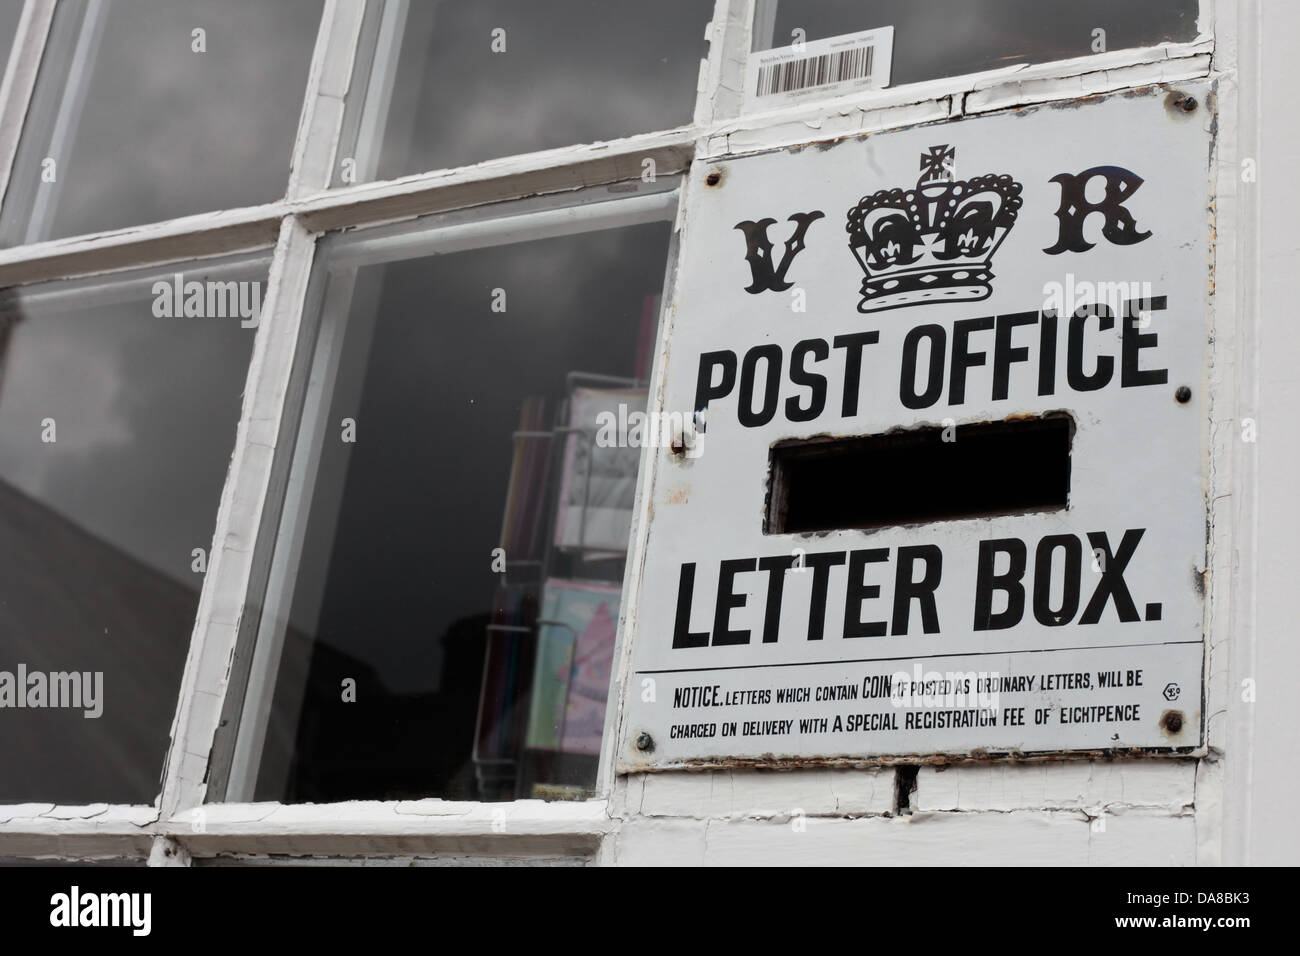 Blanchland post office, Northumberland.  One of only 3 Victorian post boxes in the UK is located here. Stock Photo